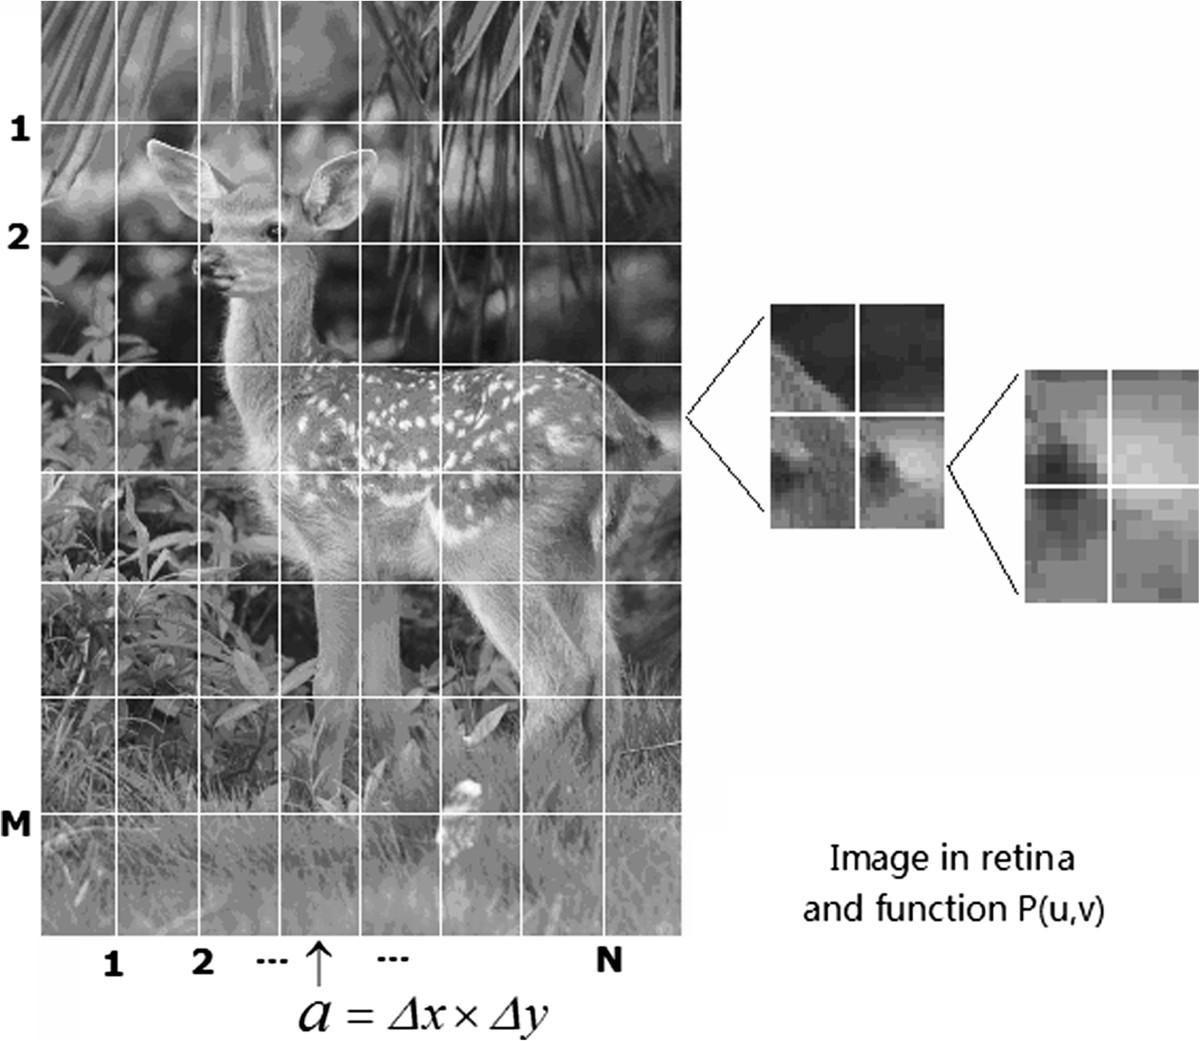 https://static-content.springer.com/image/art%3A10.1186%2F1471-2202-15-50/MediaObjects/12868_2013_Article_3504_Fig9_HTML.jpg